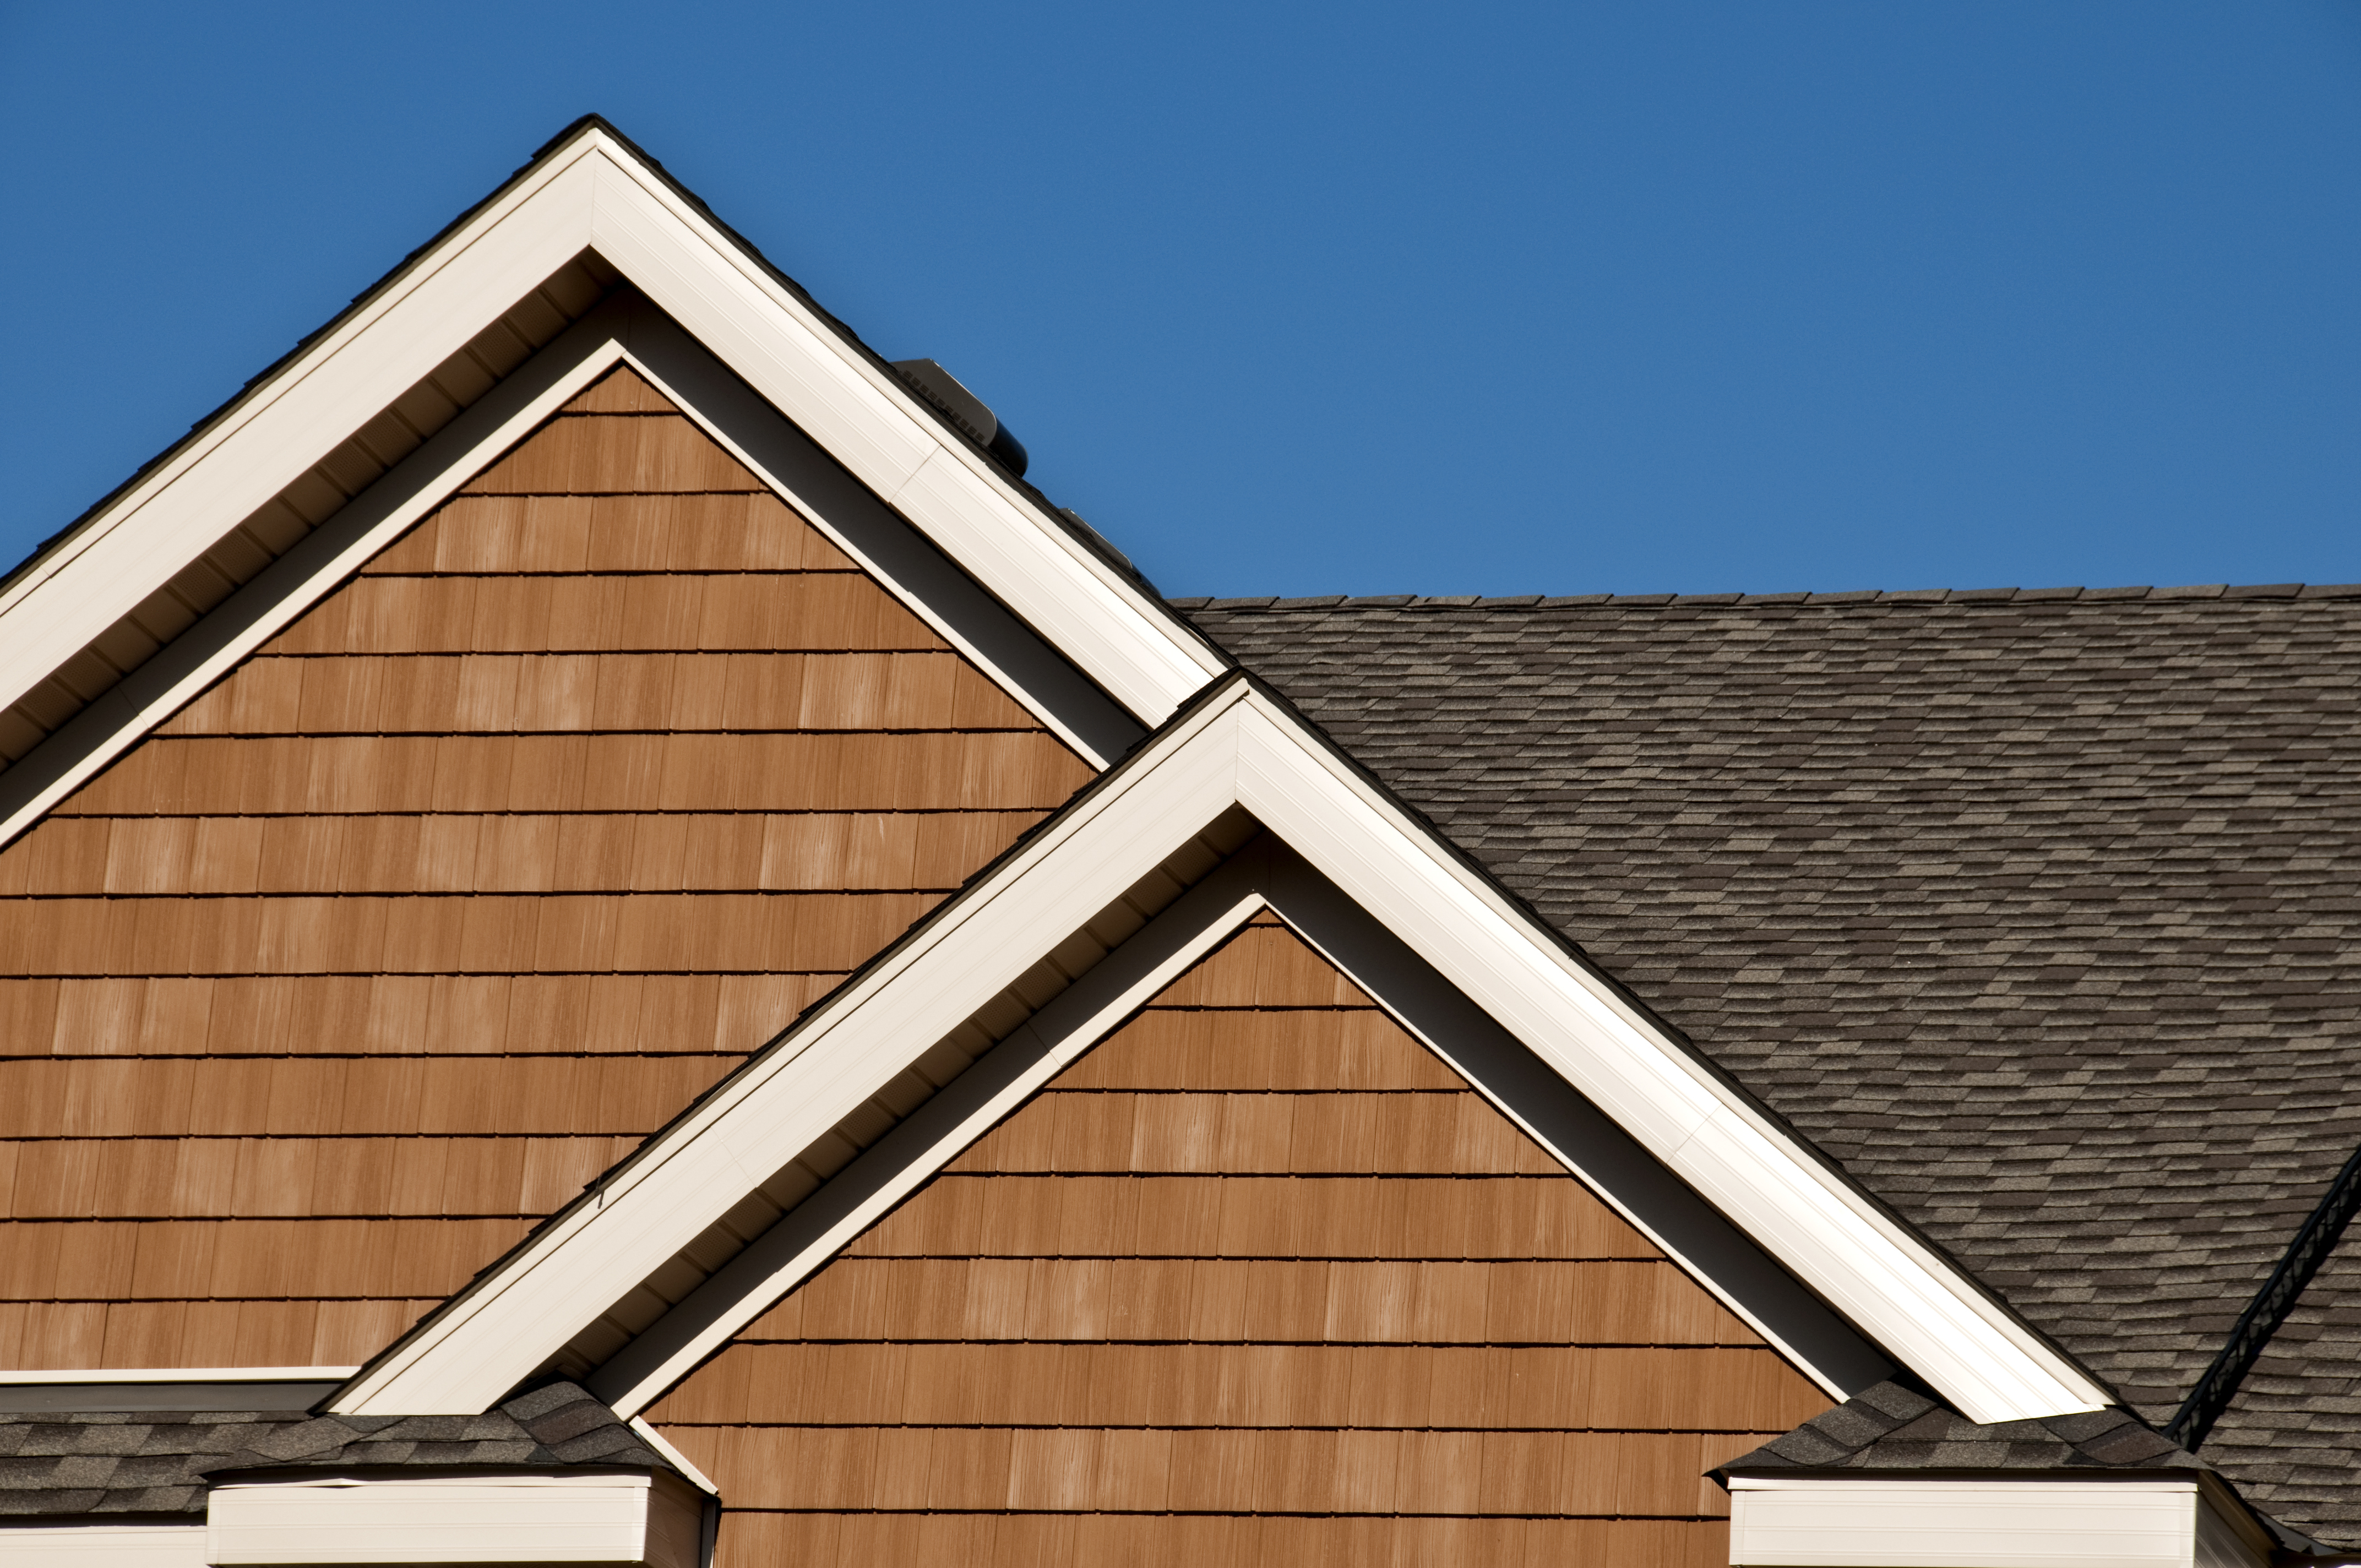 How To Tie A Gable Roof Into An Existing Roof Hunker